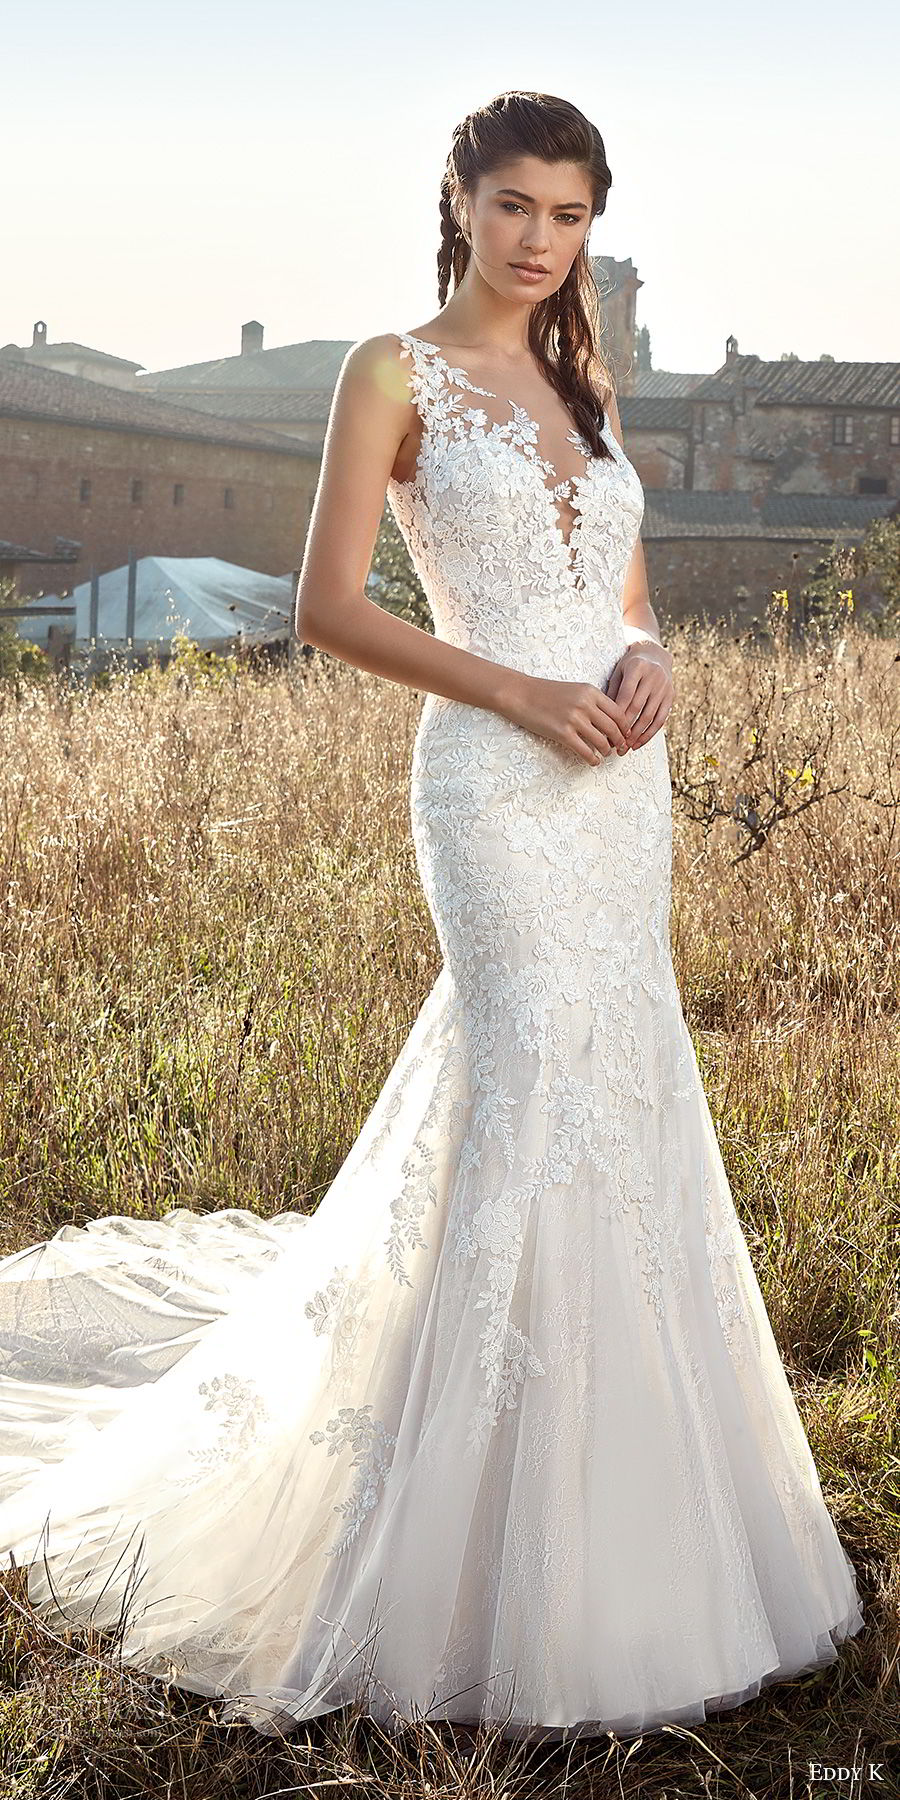 eddy k 2019 ek sleeveless deep plunging sweetheart neckline heavily embellished bodice elegant mermaid wedding dress chapel train (7) mv